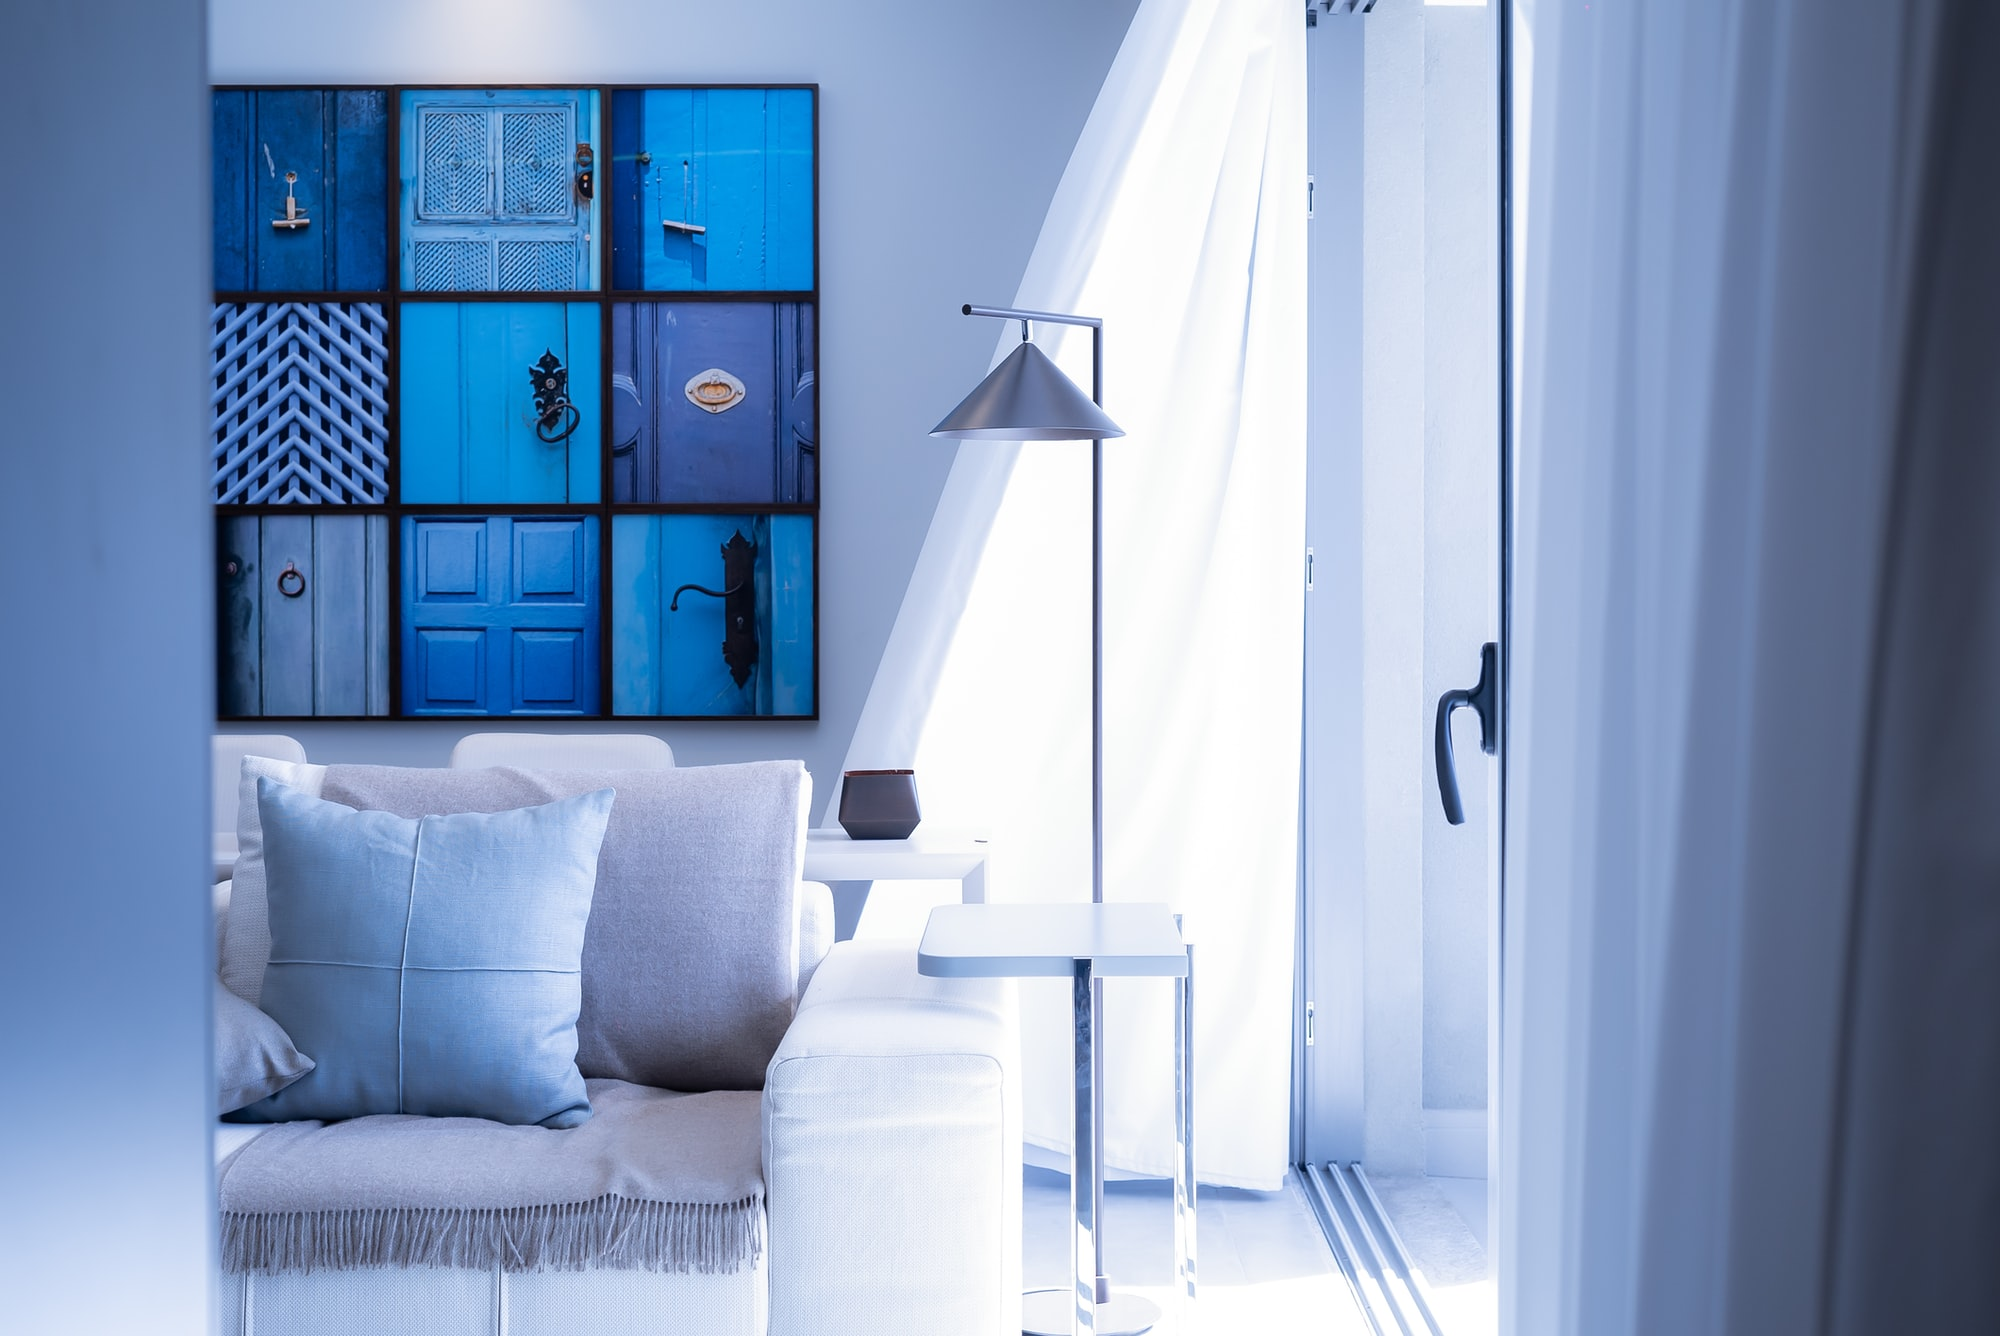 Top 3 Wi-Fi Smart Plugs To Upgrade Your Smart Home